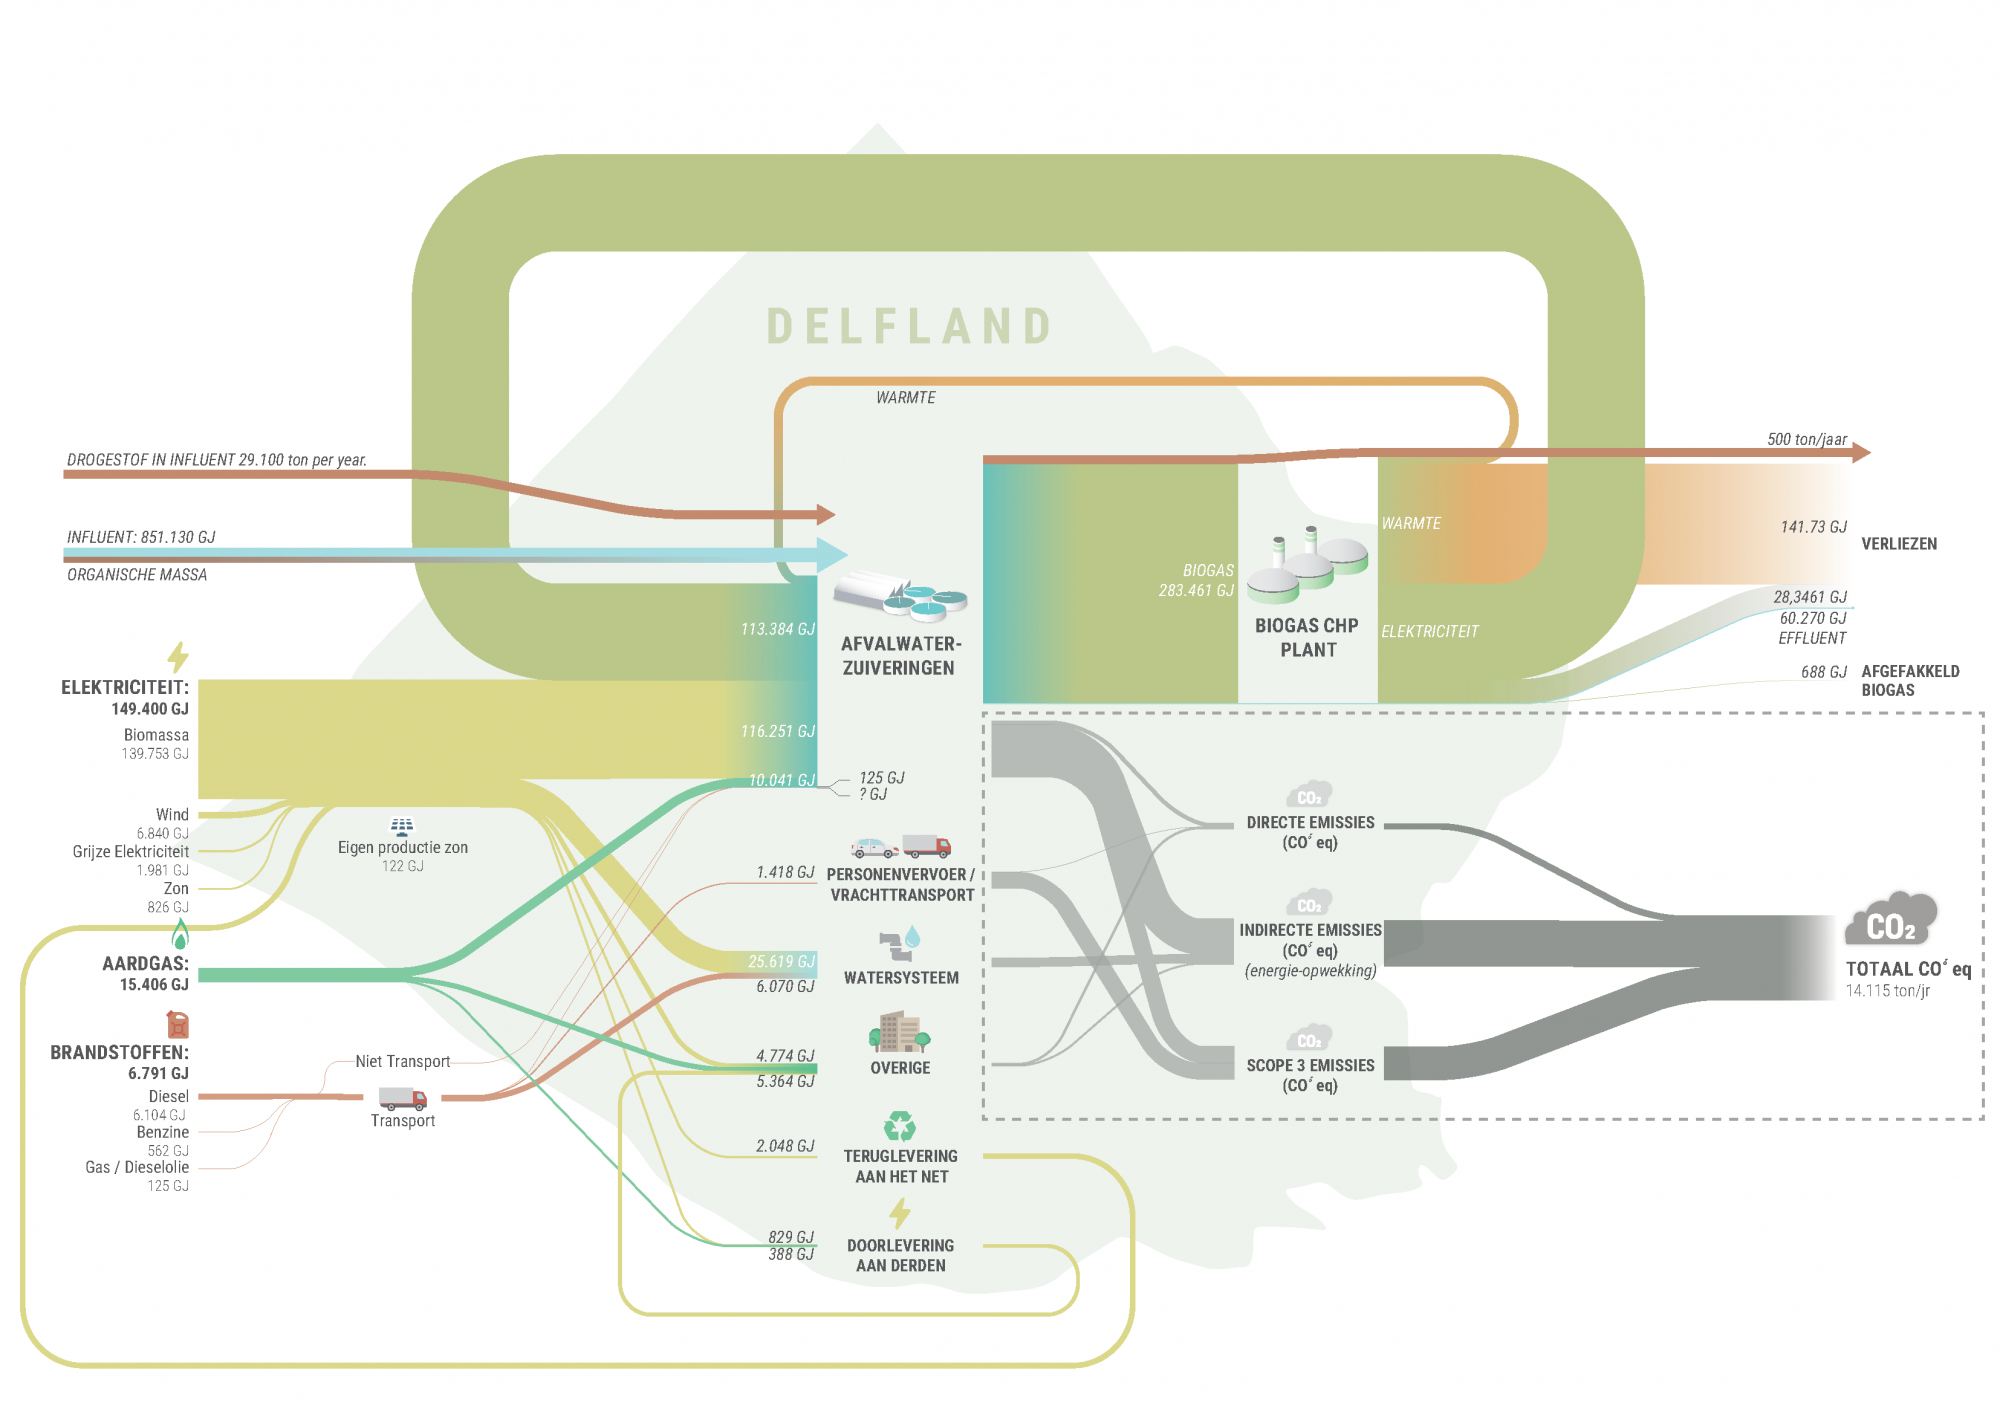 Delfland Water Board's waste streams include 14,115 tons of carbon emissions a year.